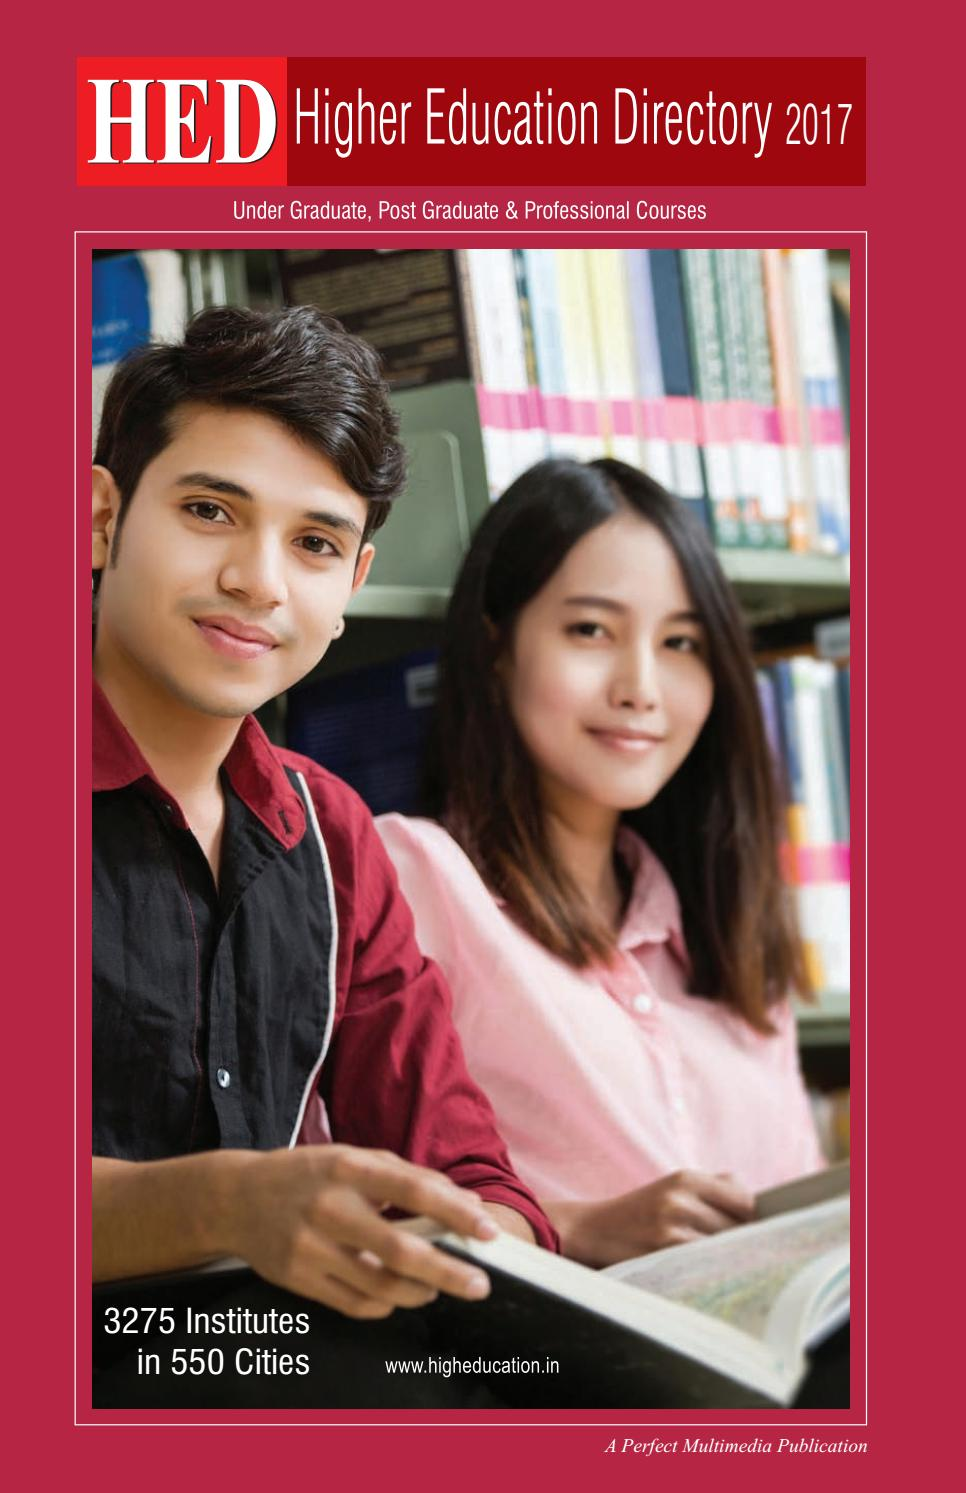 HED-Higher Education Directory 2017 by Perfect Multimedia